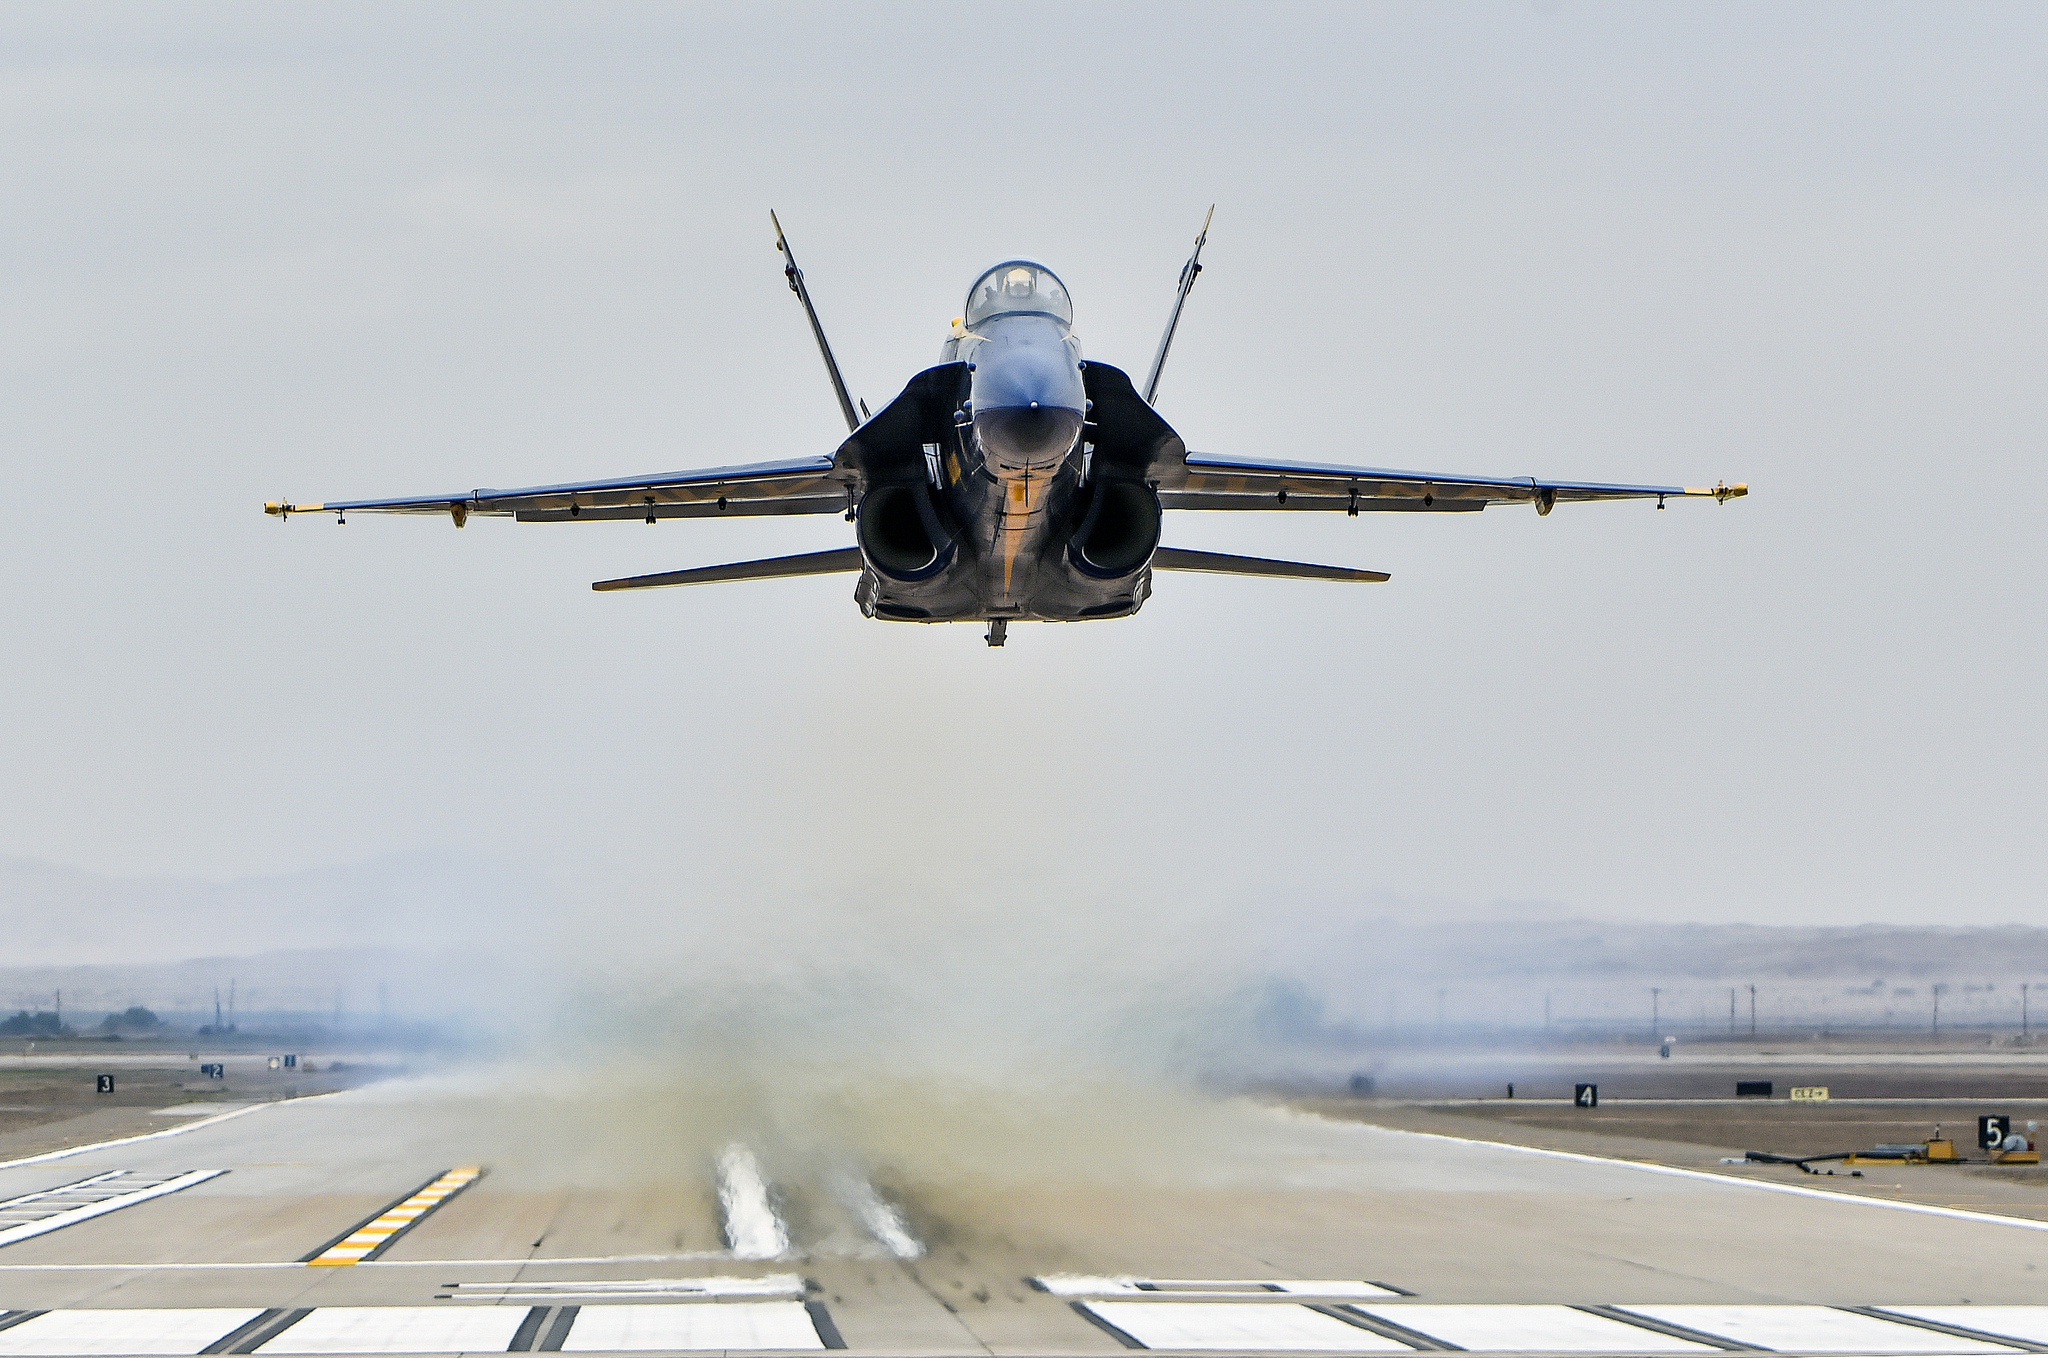 Opposing solo pilot Lt. Cmdr. Andre Webb, assigned to the U.S. Navy Flight Demonstration Squadron, the Blue Angels, performs a low transition take off during a practice demonstration on Feb. 2, 2019, at Naval Air Facility El Centro, Calif. (Mass Communication Specialist 2nd Class Timothy Schumaker/Navy)